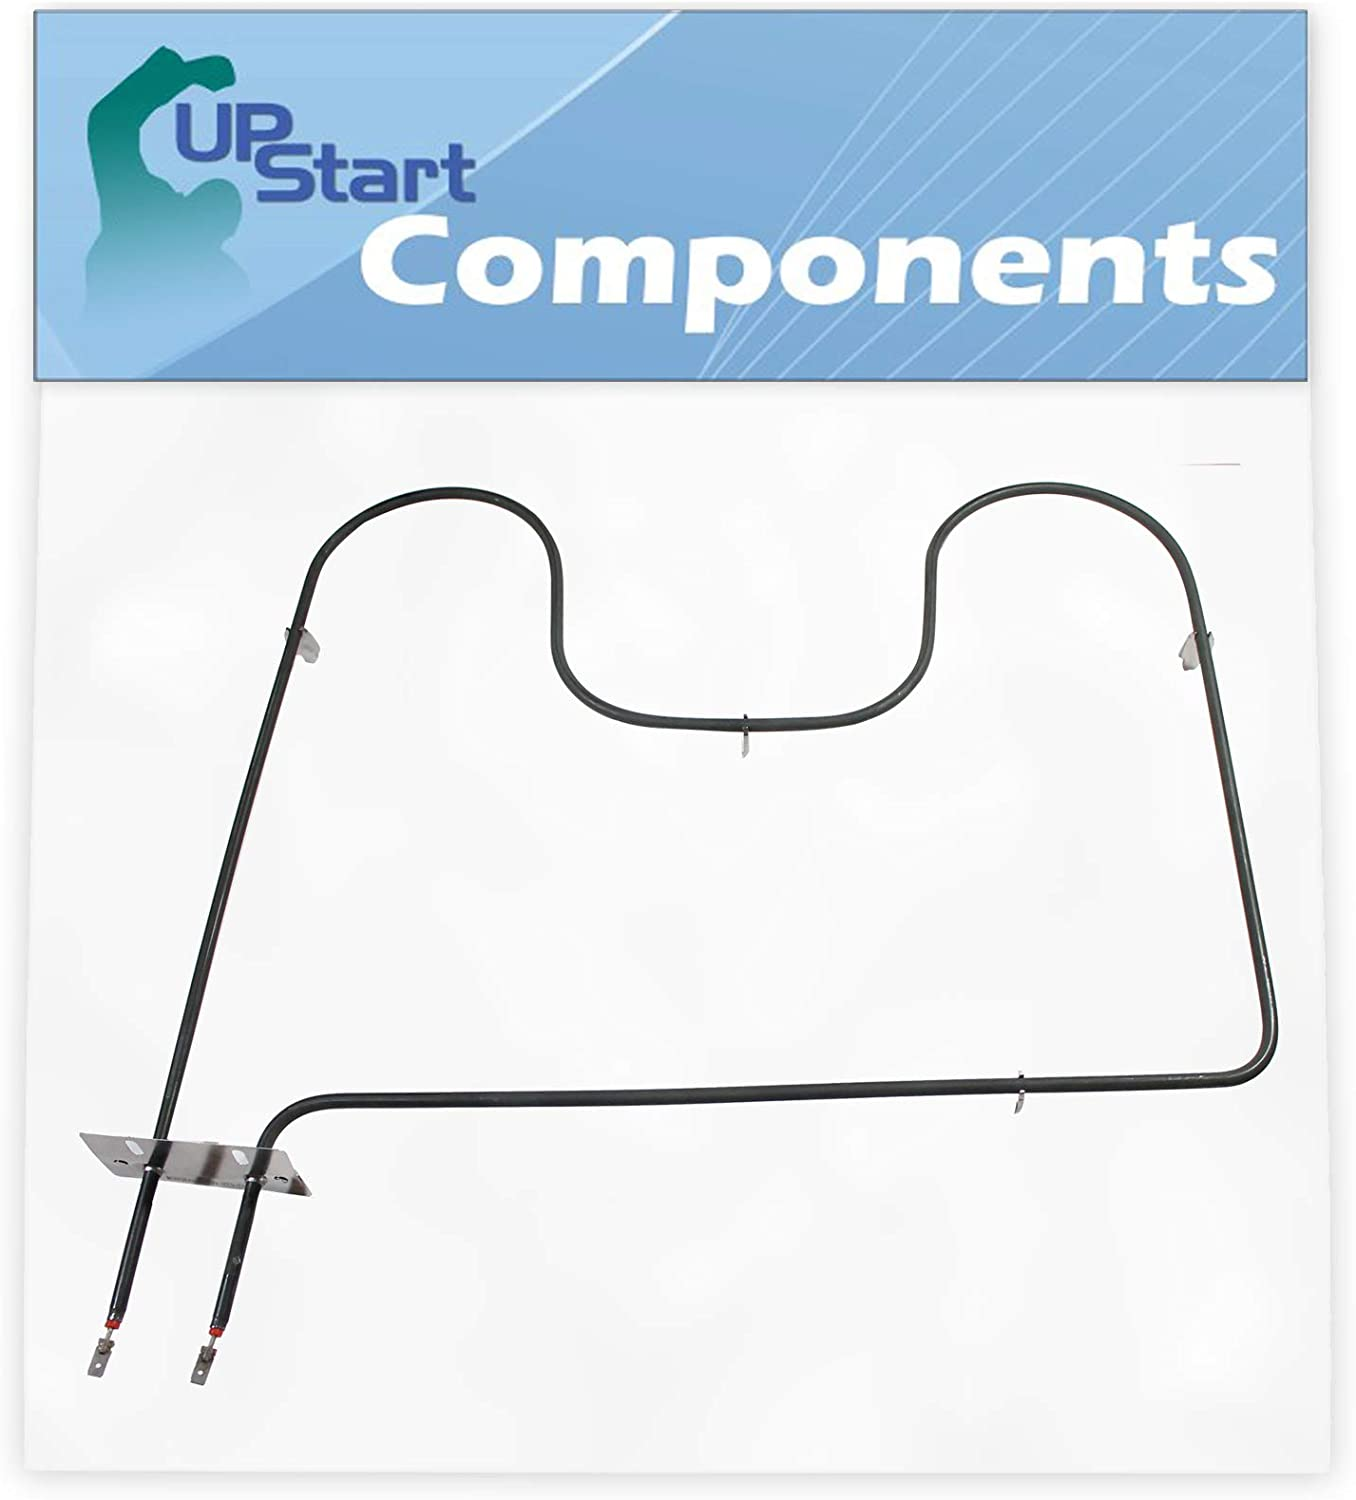 7406P428-60 Oven Heating Element Replacement for Maytag MER6755AAS - Compatible with WP7406P428-60 Bake Element